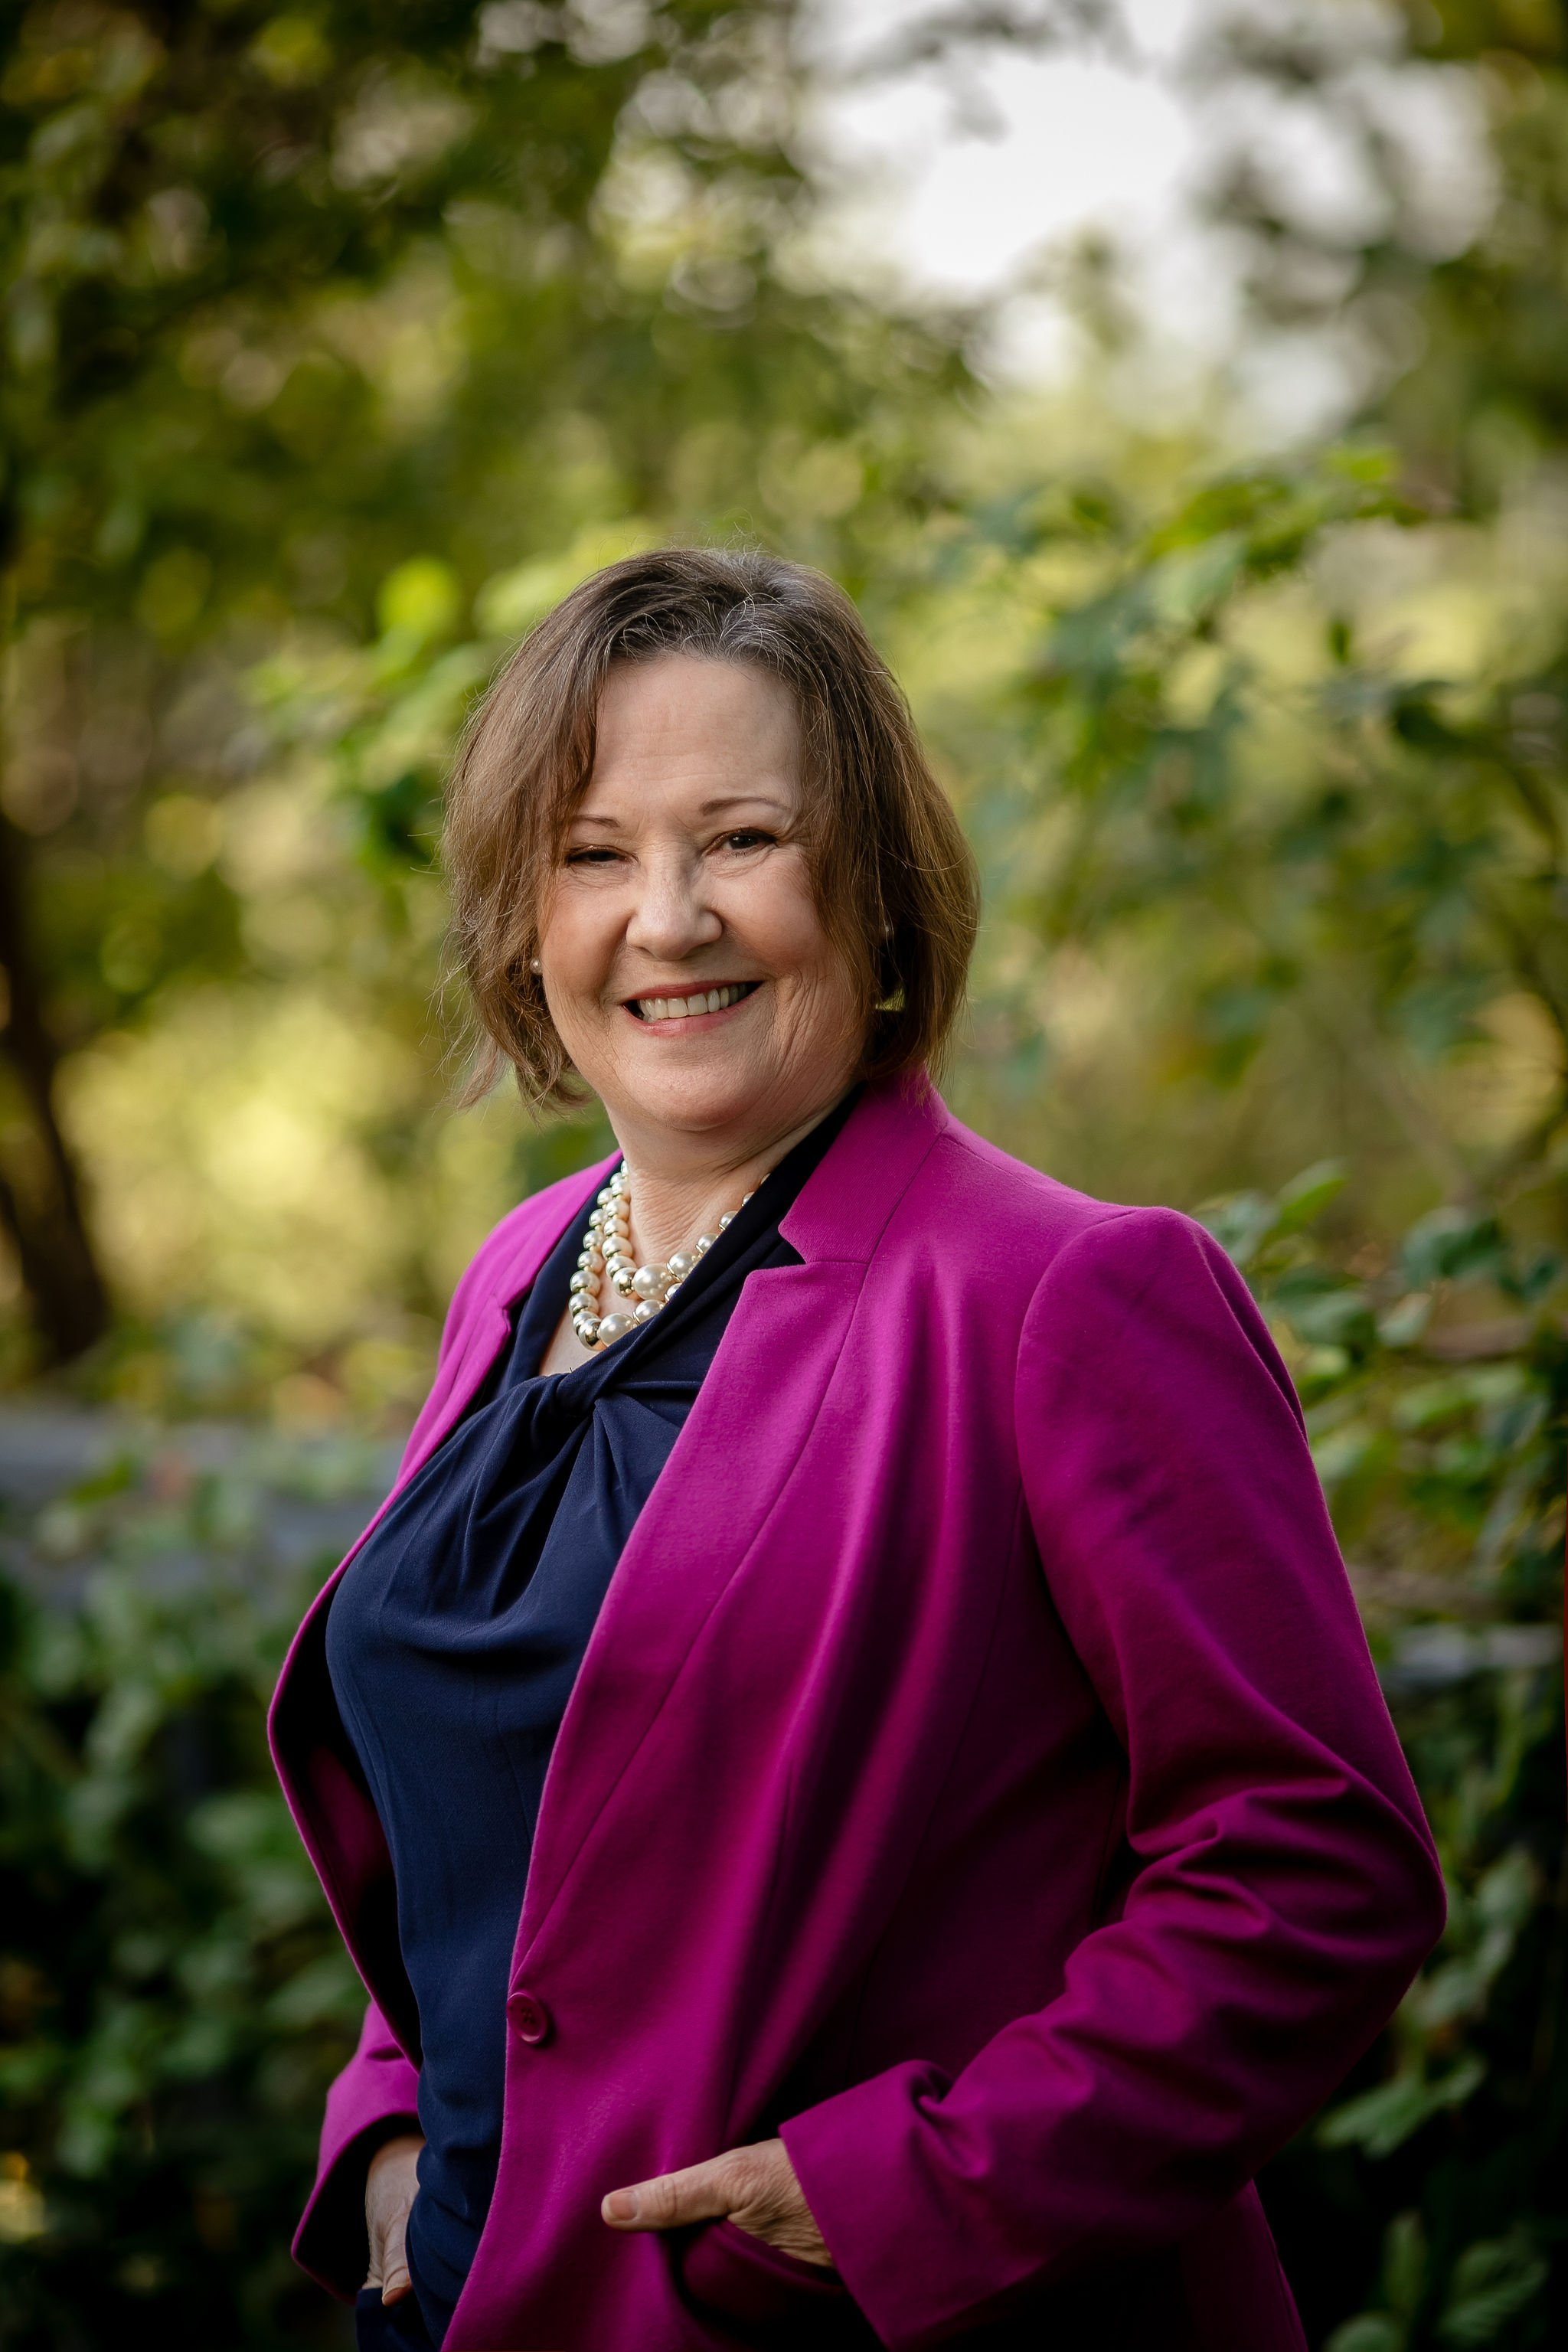 Management Consultant Helen Ross Petty